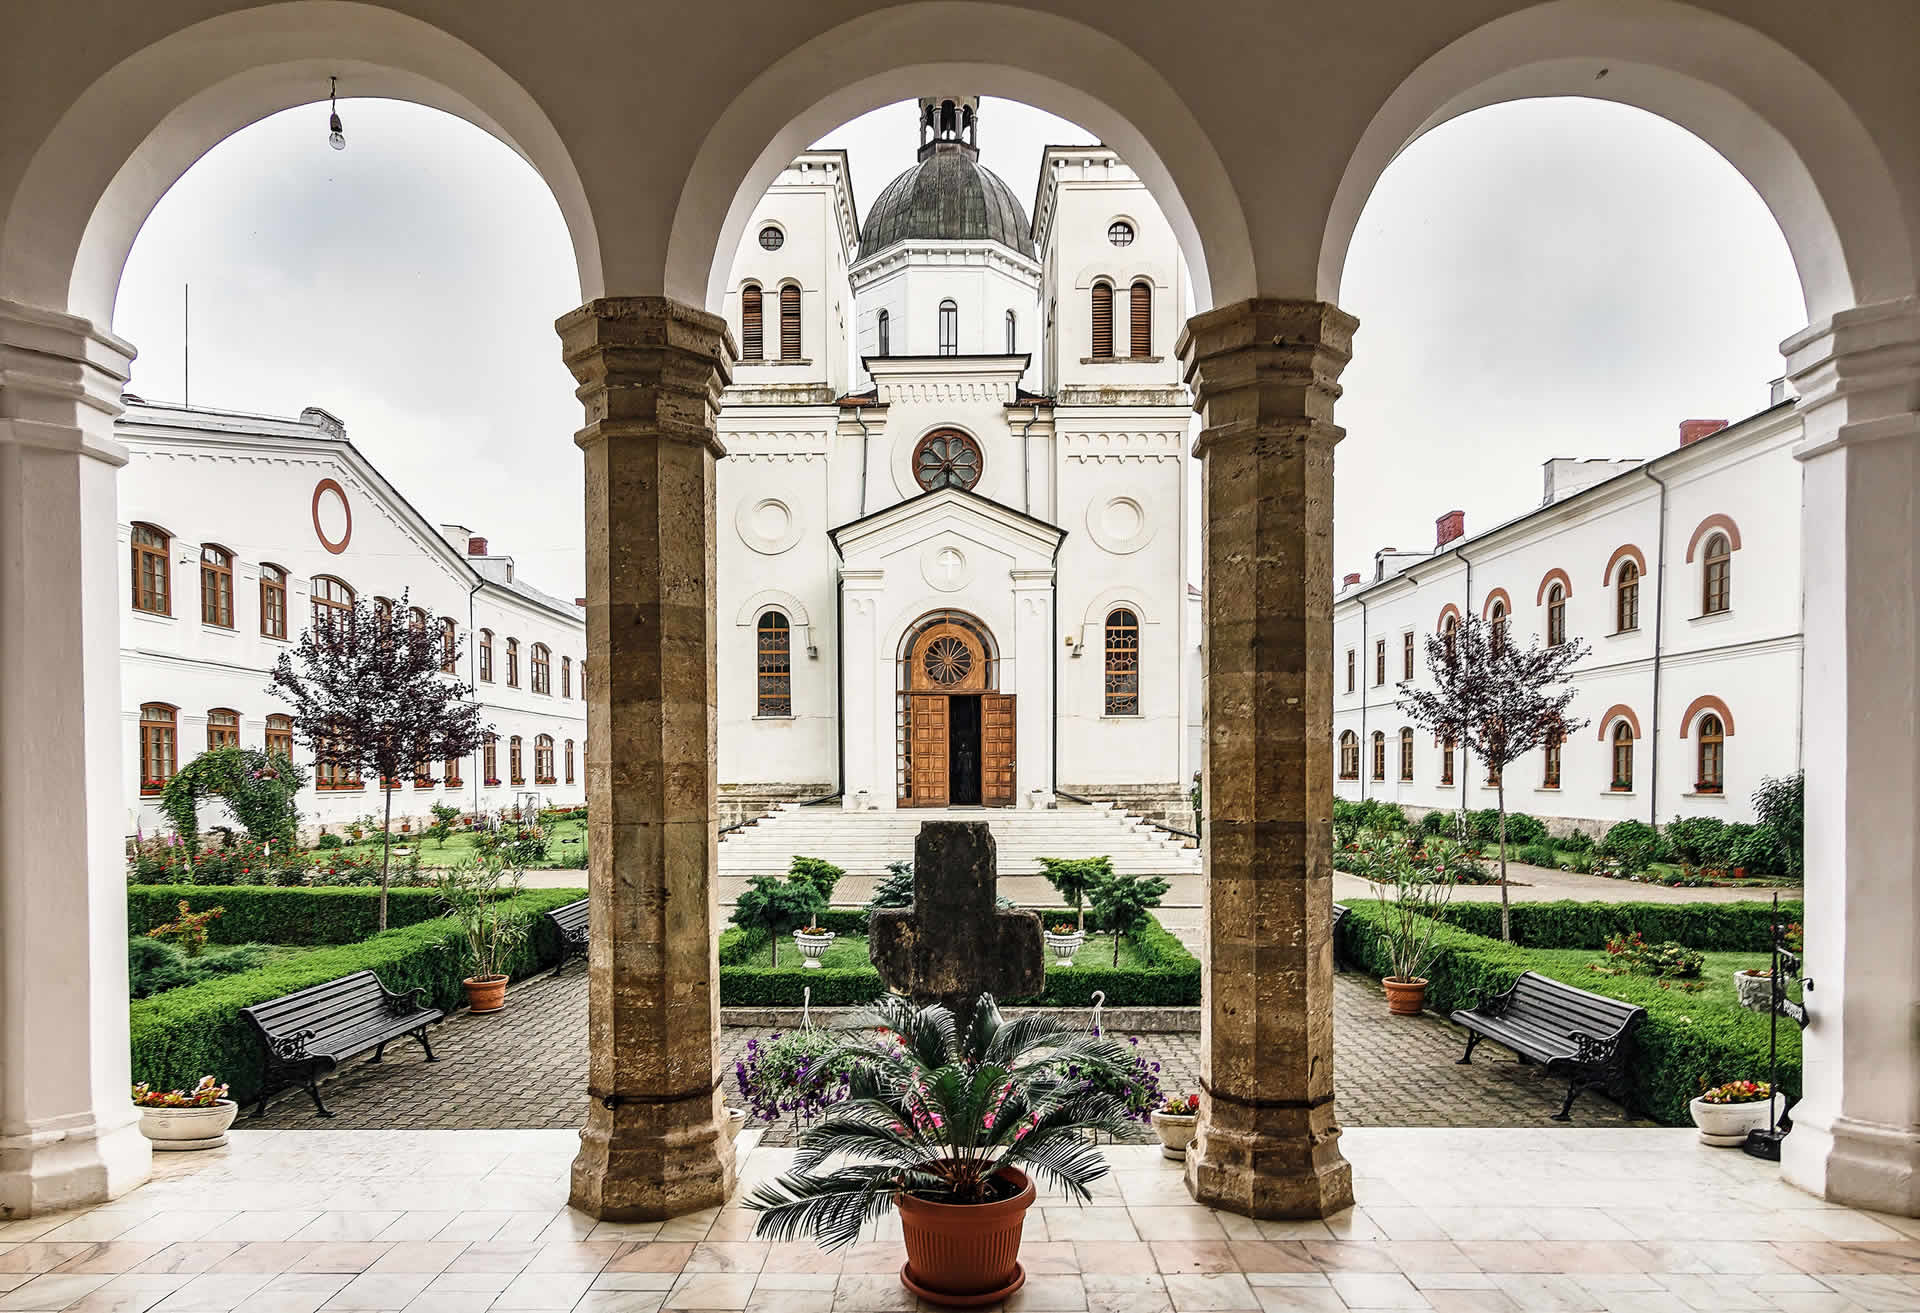 A  grandiose Italian monastery towers behind a small courtyard, with pristine hedgerows and two benches